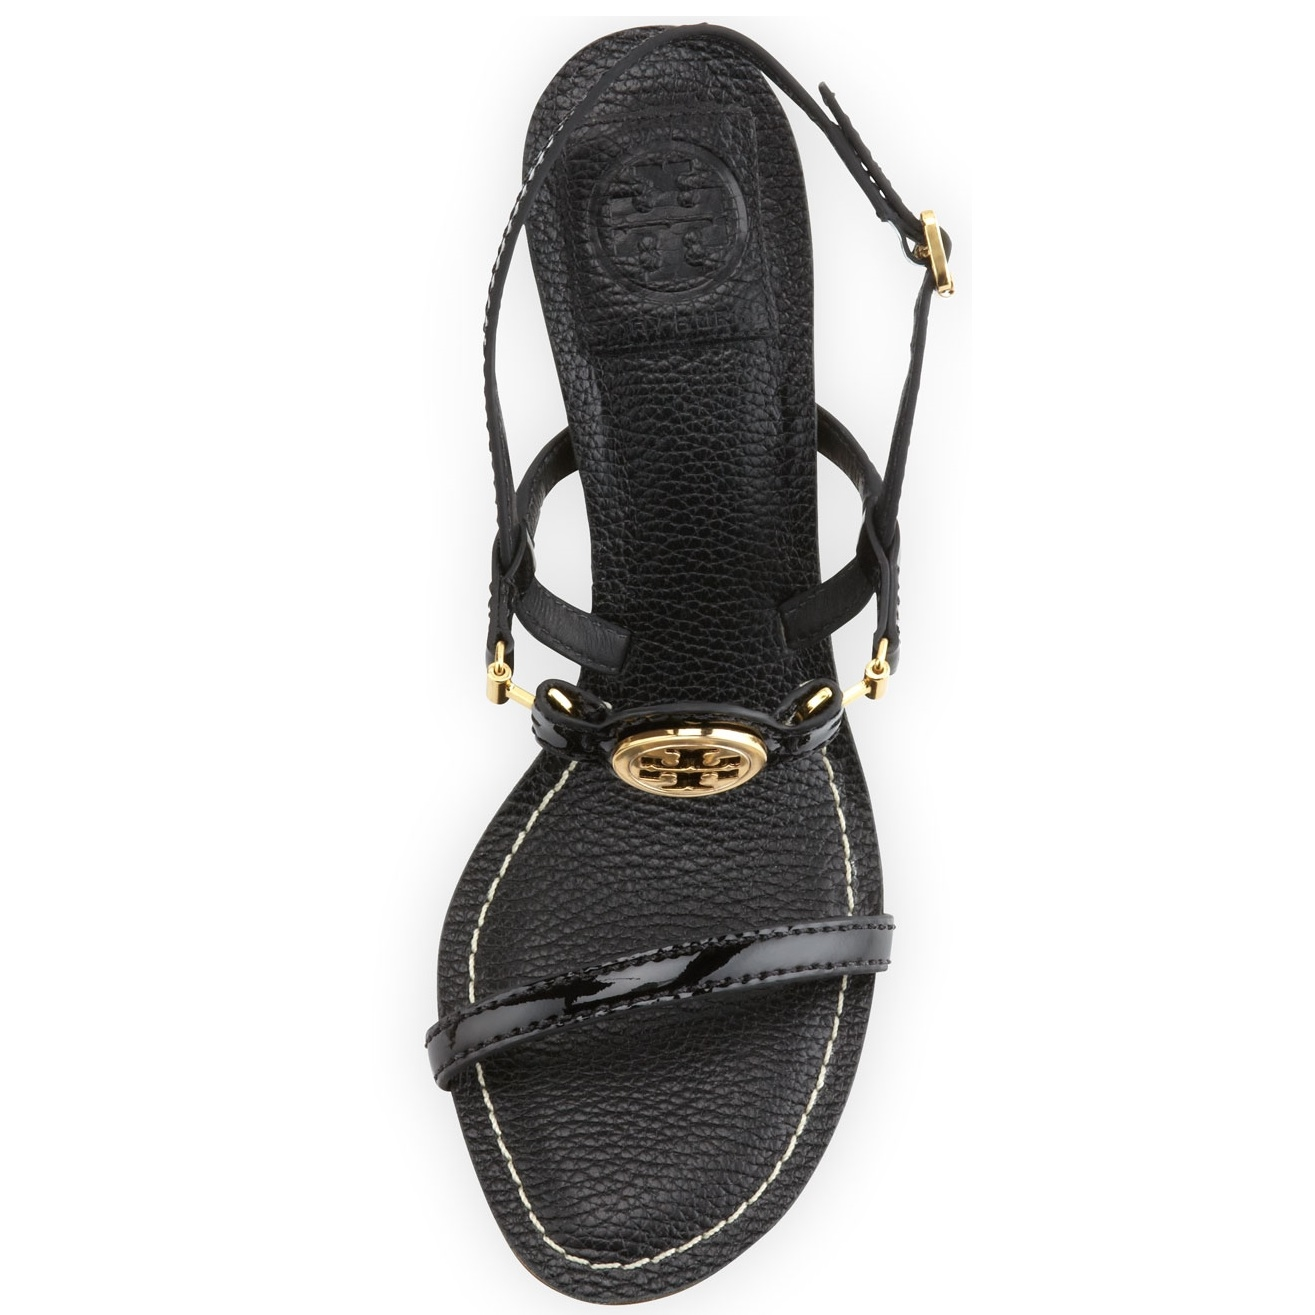 Tory Burch Mira 70MM Sandals the cheapest for sale cheap sale classic discount cheapest price shop offer cheap online Pvbusir6FZ